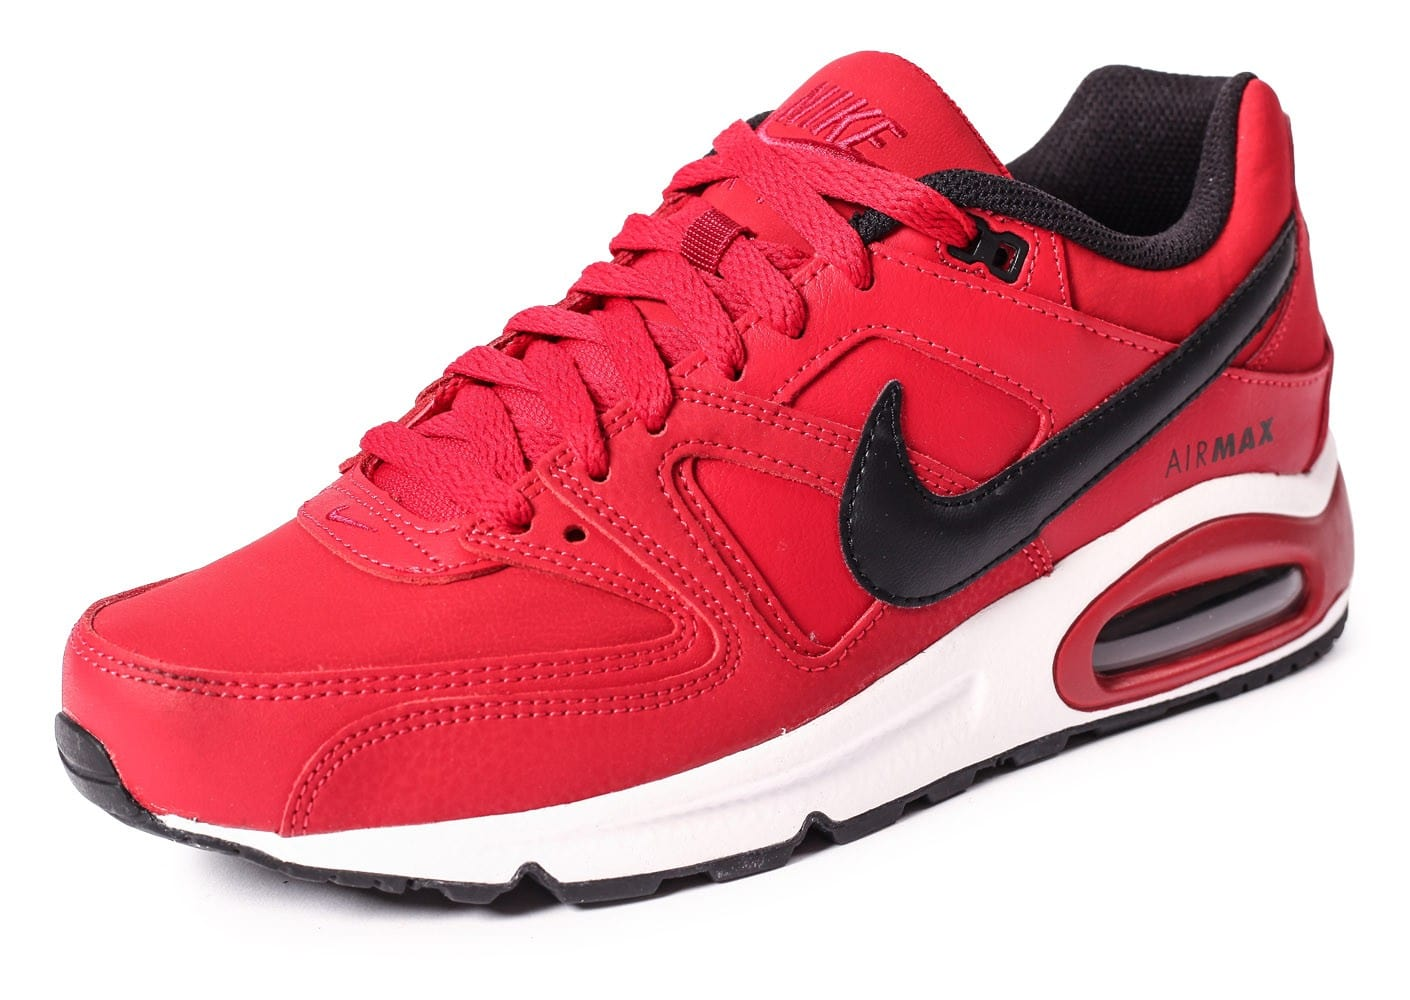 Nike Air Max Command Leather rouge et noire Chaussures